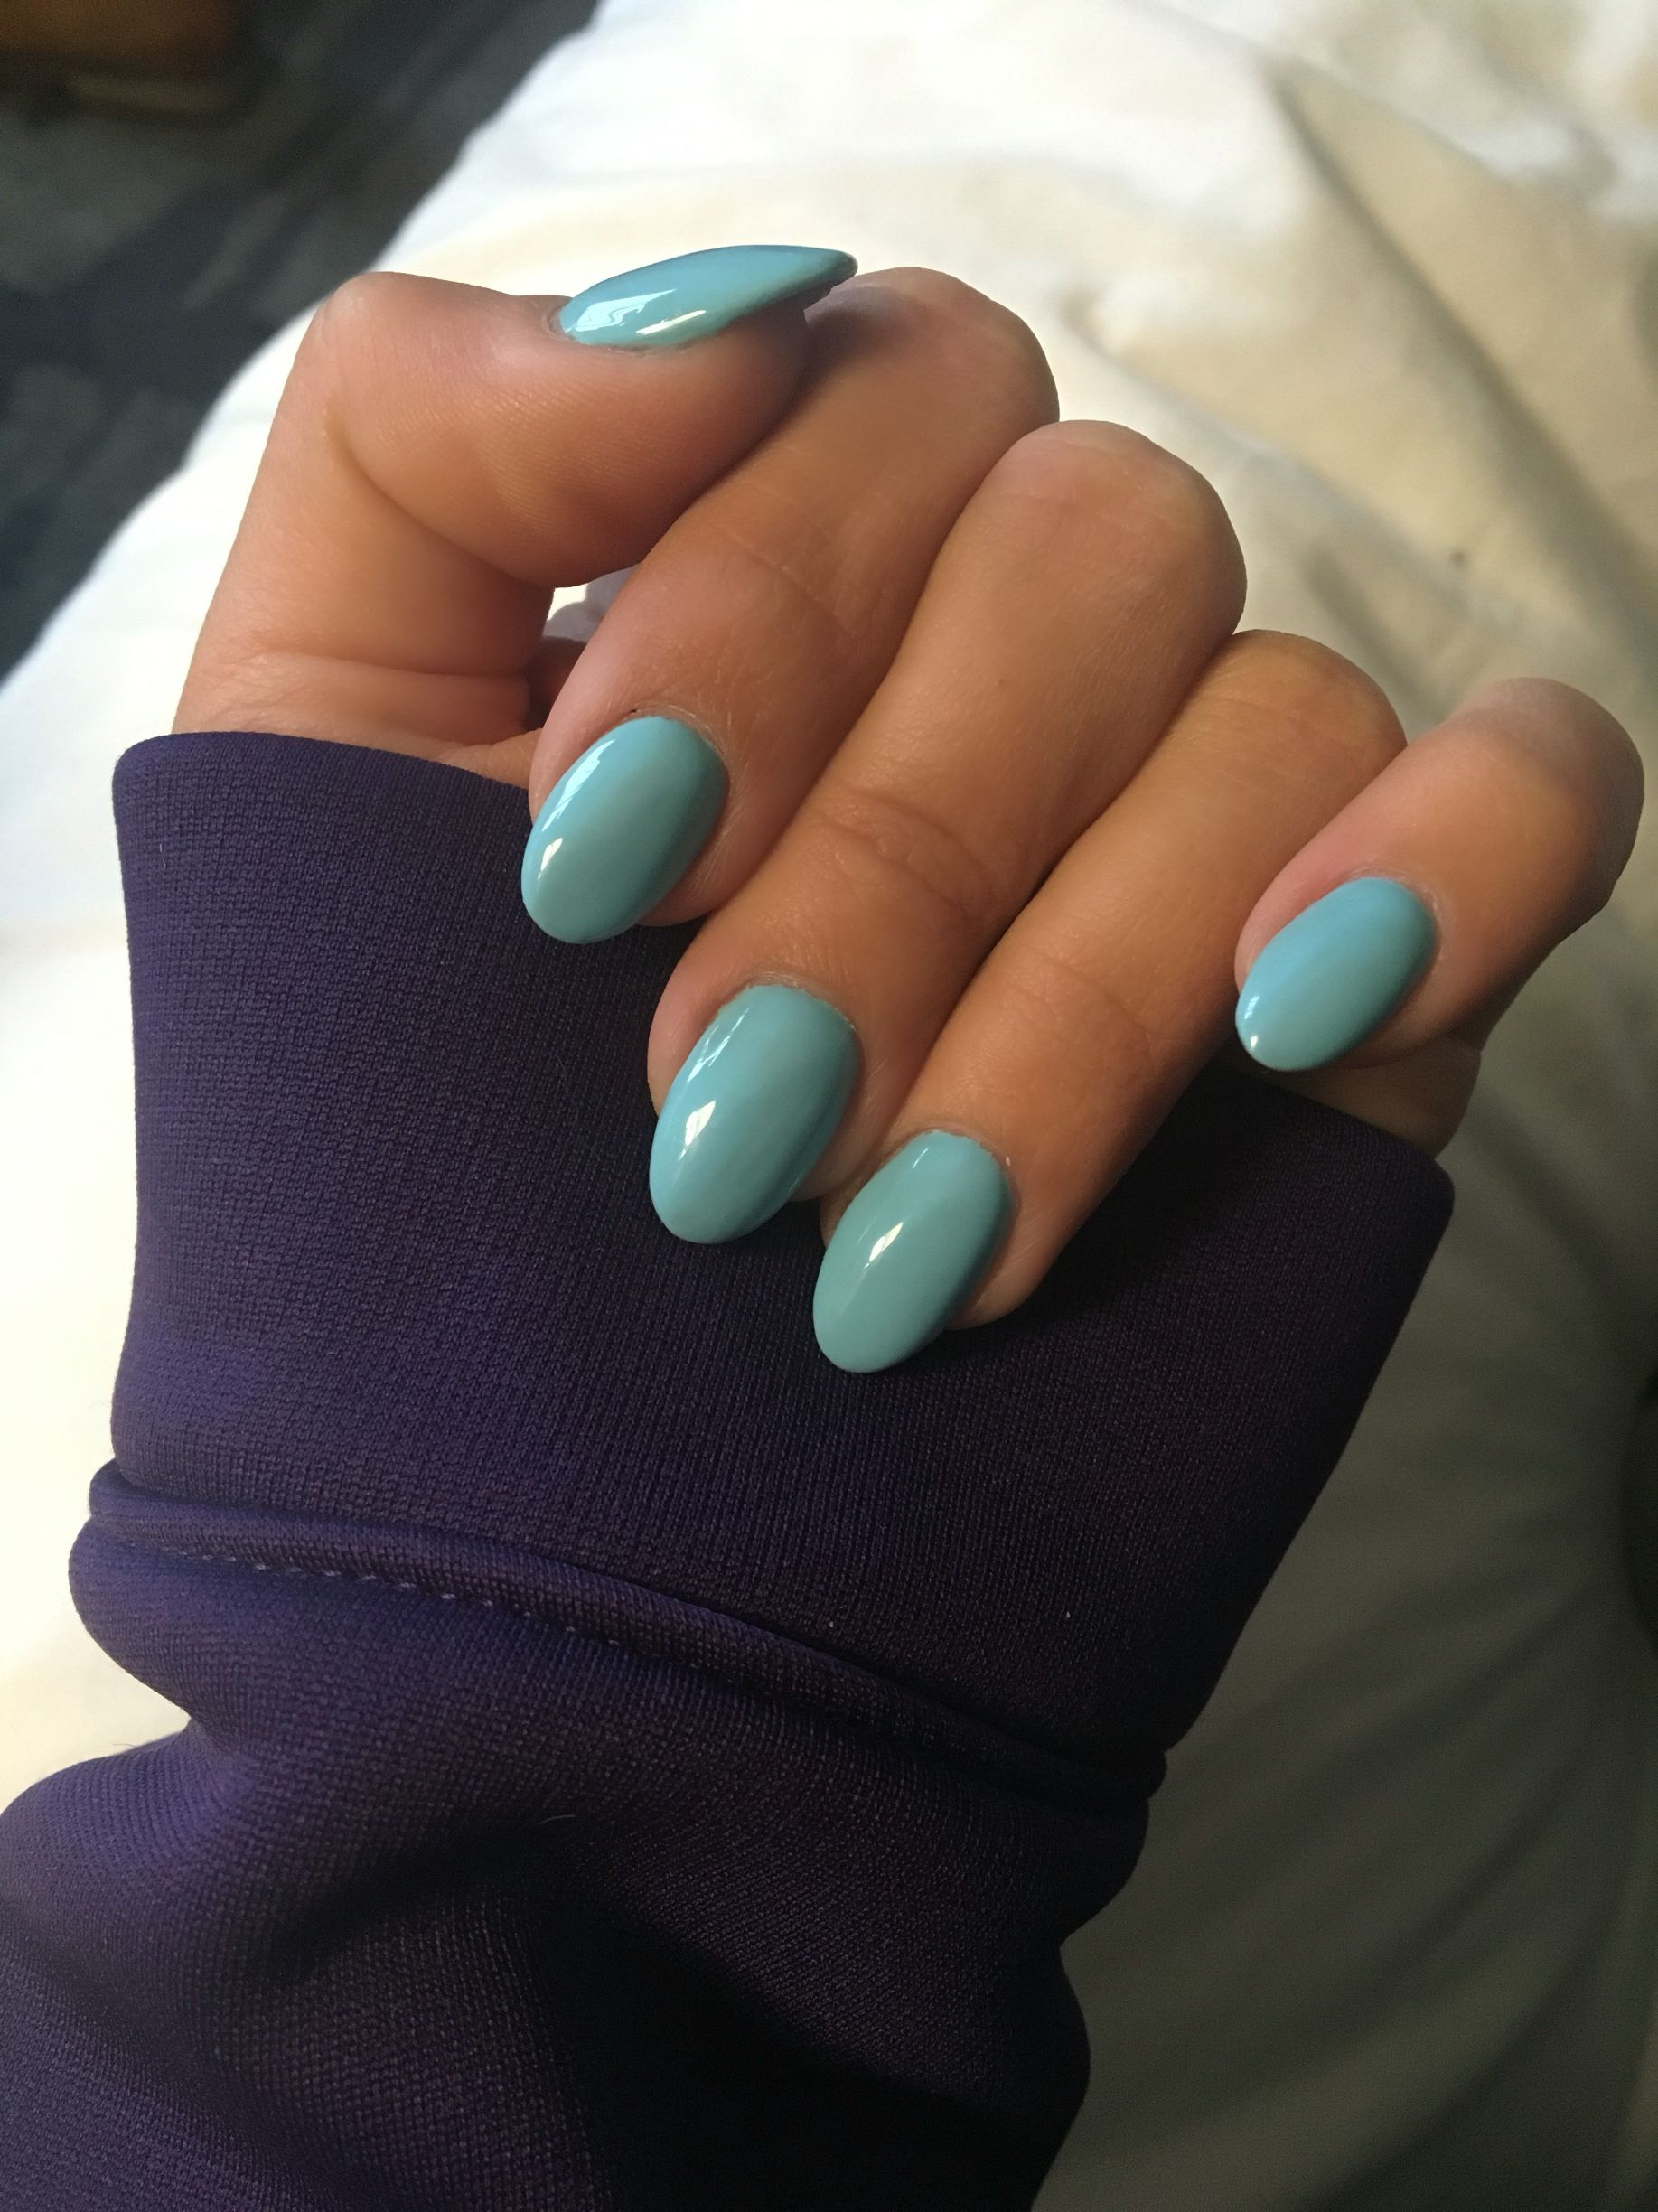 Tiffany S Blue Almond Shaped Nails Short Acrylic Nails Oval Nails Trendy Nails